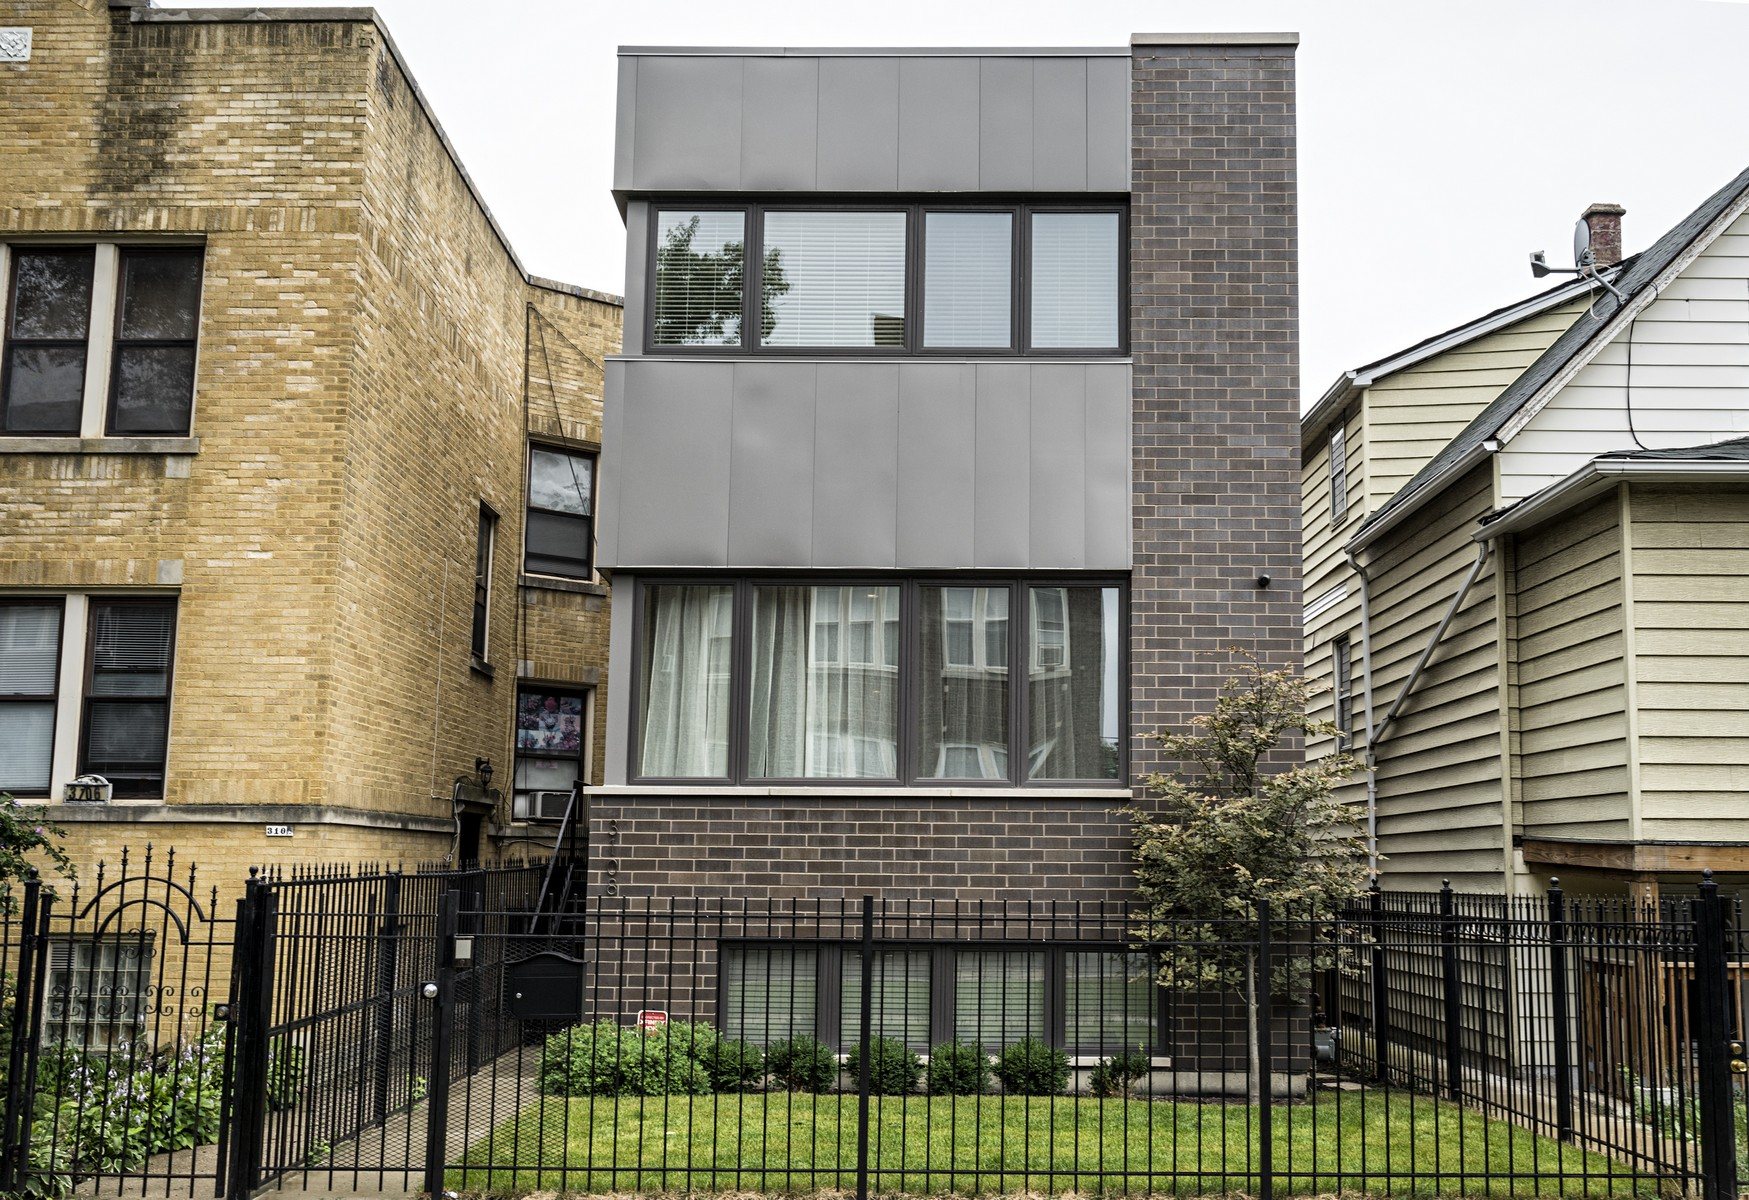 단독 가정 주택 용 매매 에 Immaculate Avondale Home 3108 N Francisco Avenue Avondale, Chicago, 일리노이즈, 60618 미국